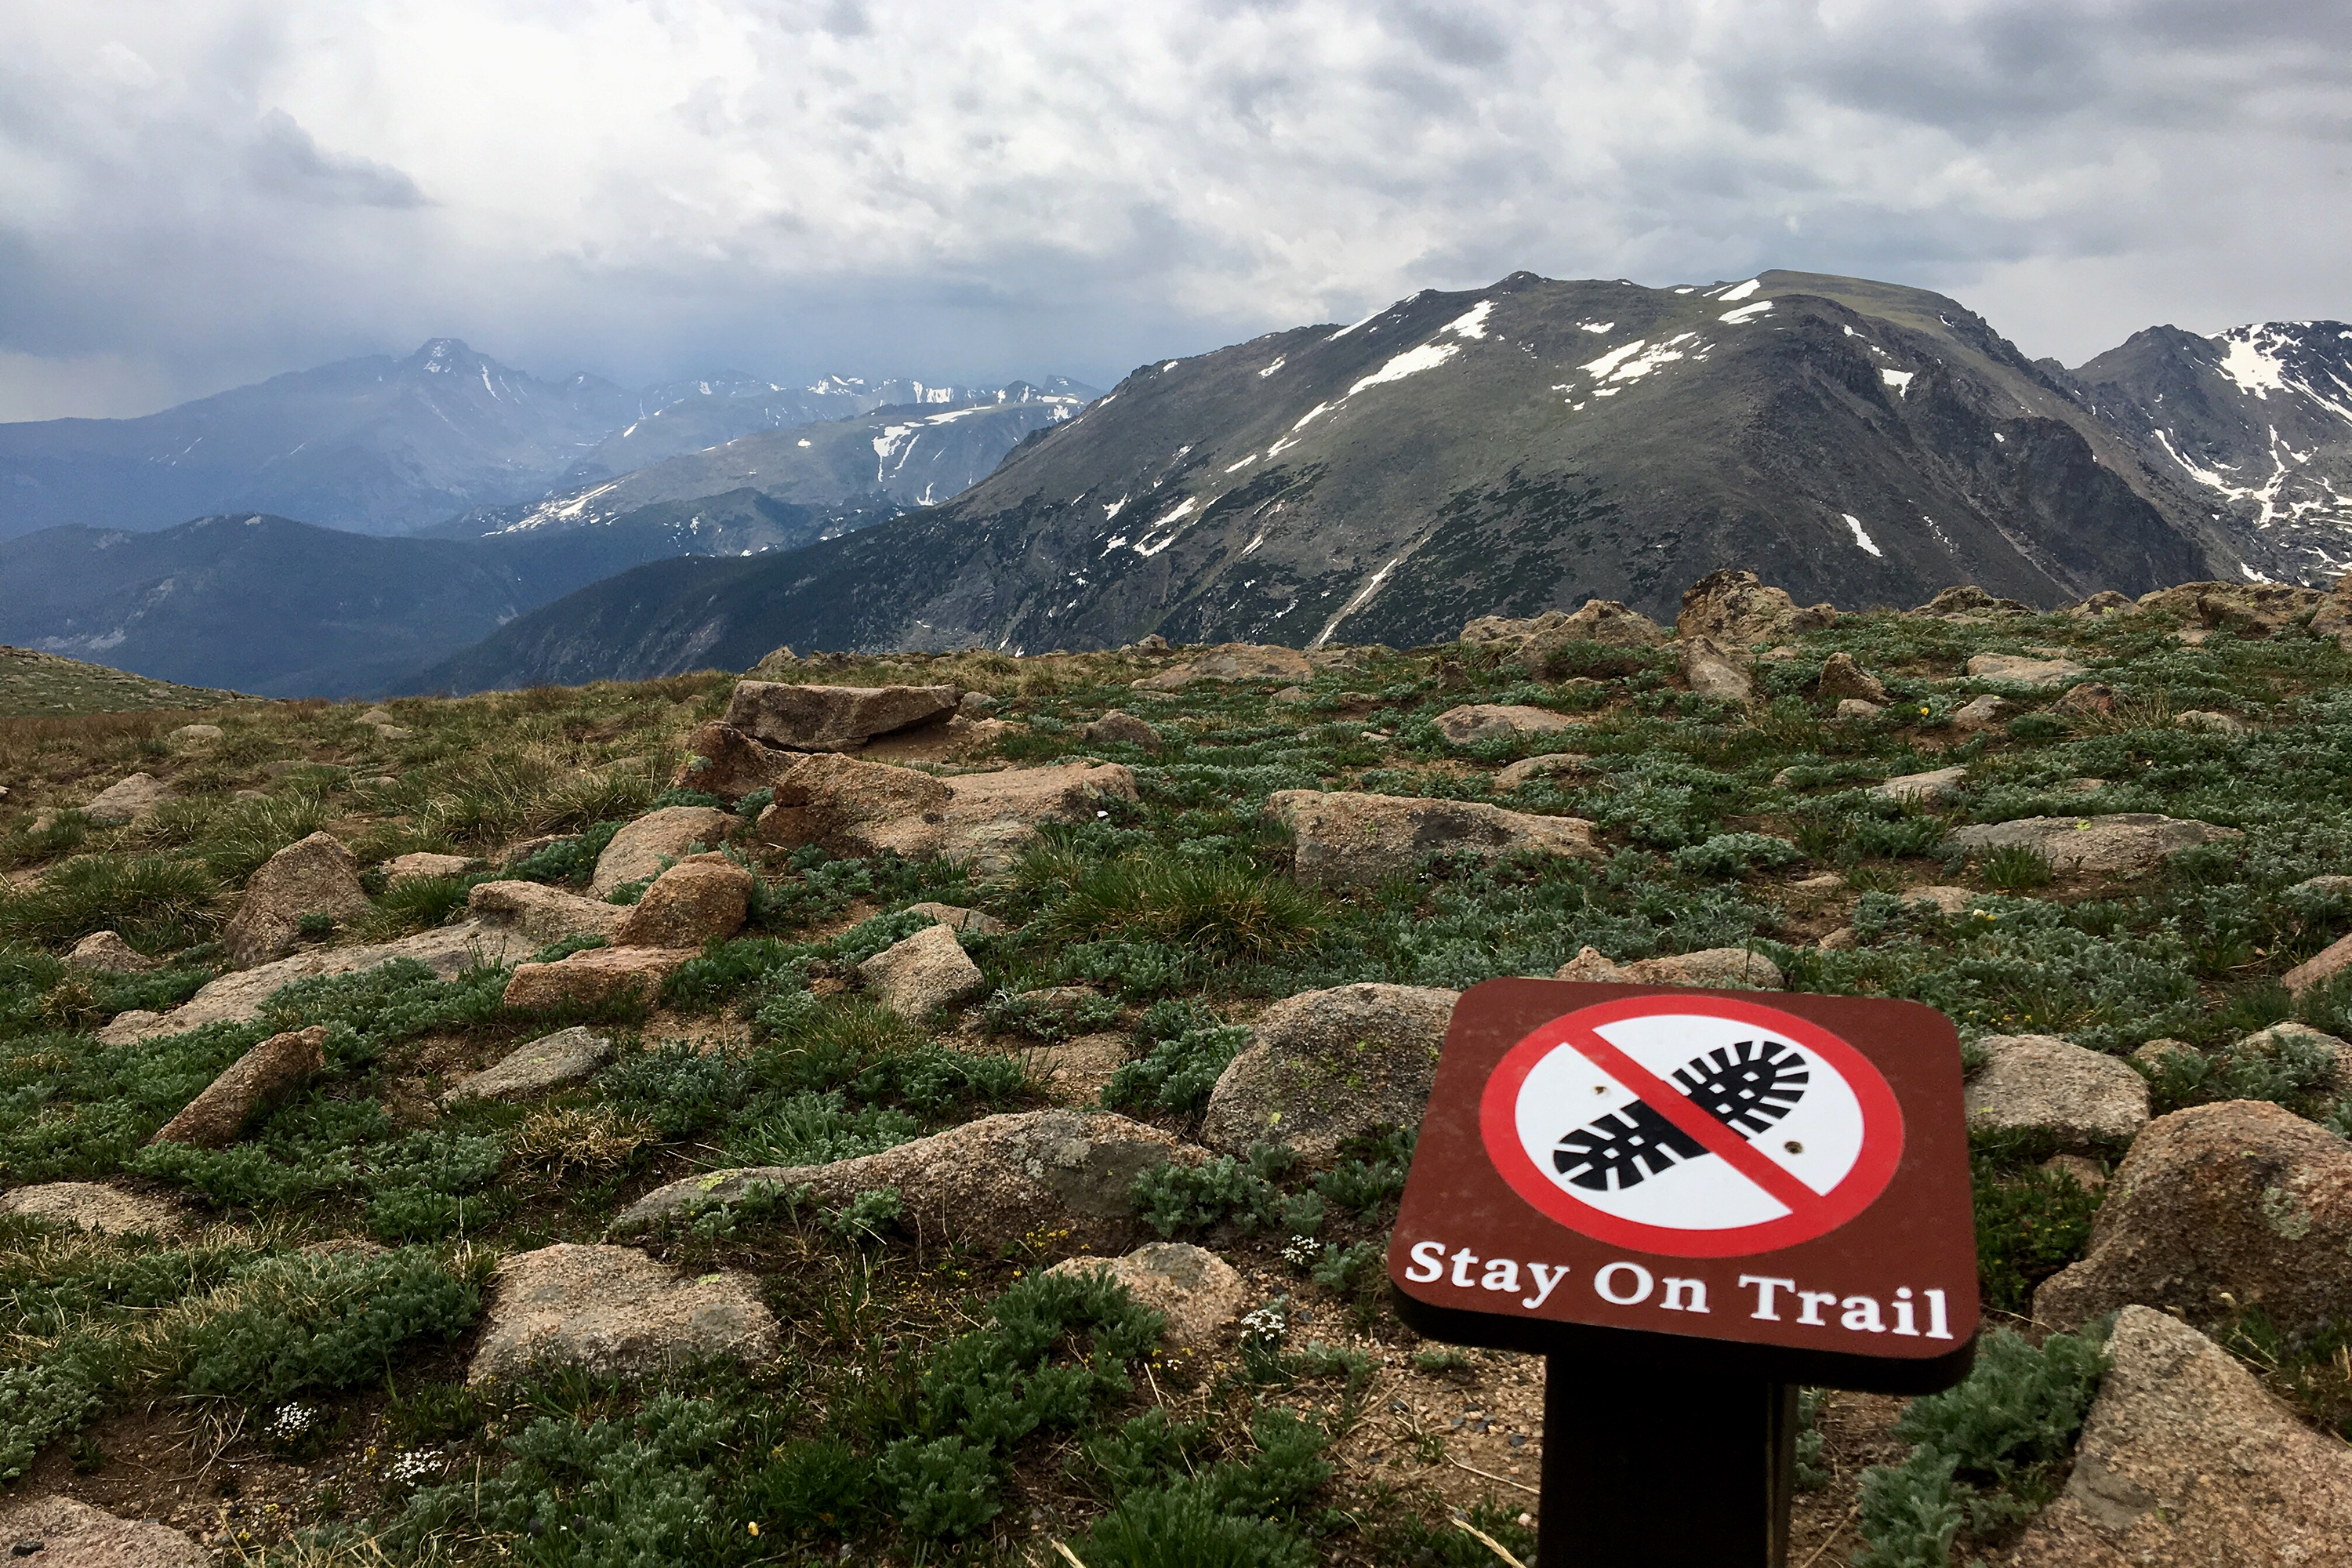 Photo: Hiking Rocky Mountain National Park 'Stay On The Trail' Sign